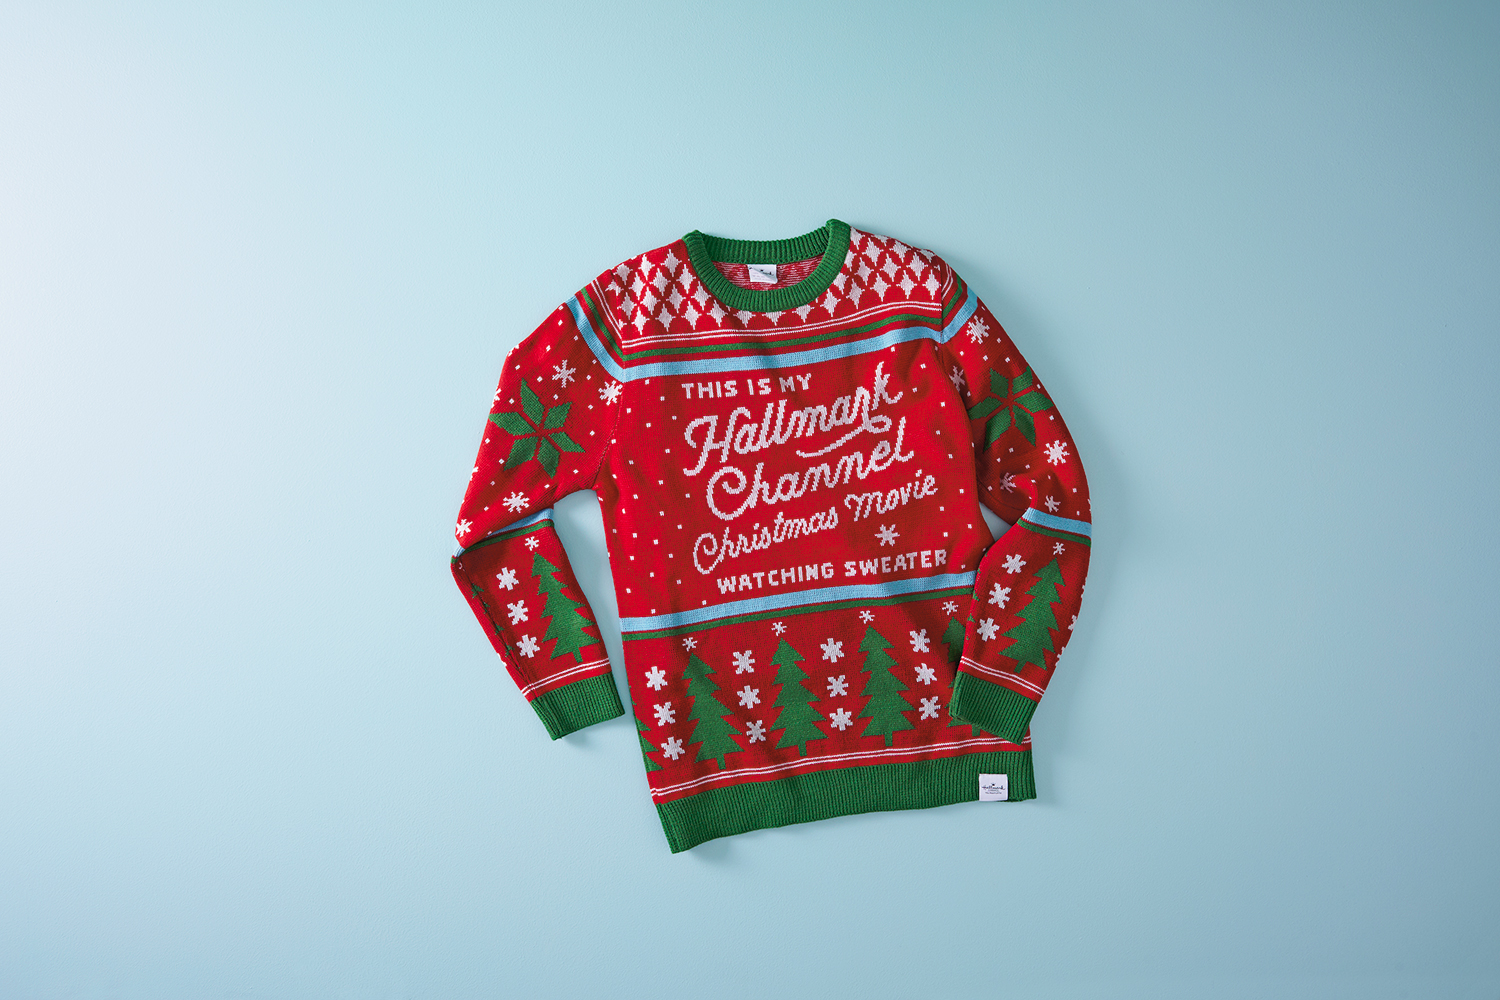 Hallmark Channel Christmas Sweater